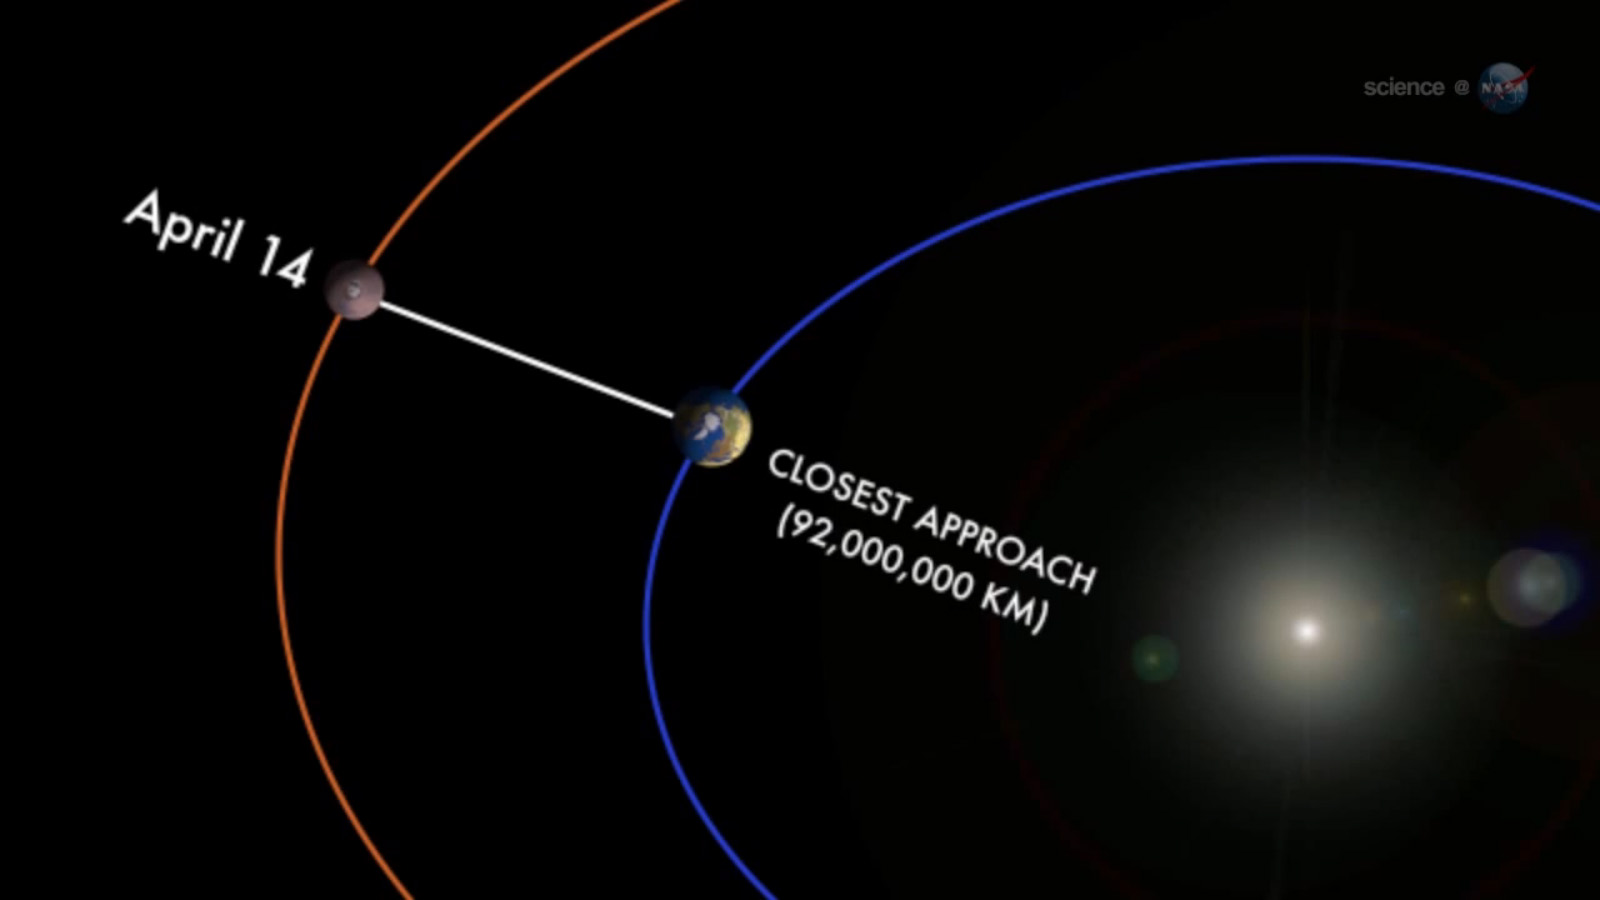 Mars Makes Closest Approach to Earth in 6 Years Monday ...